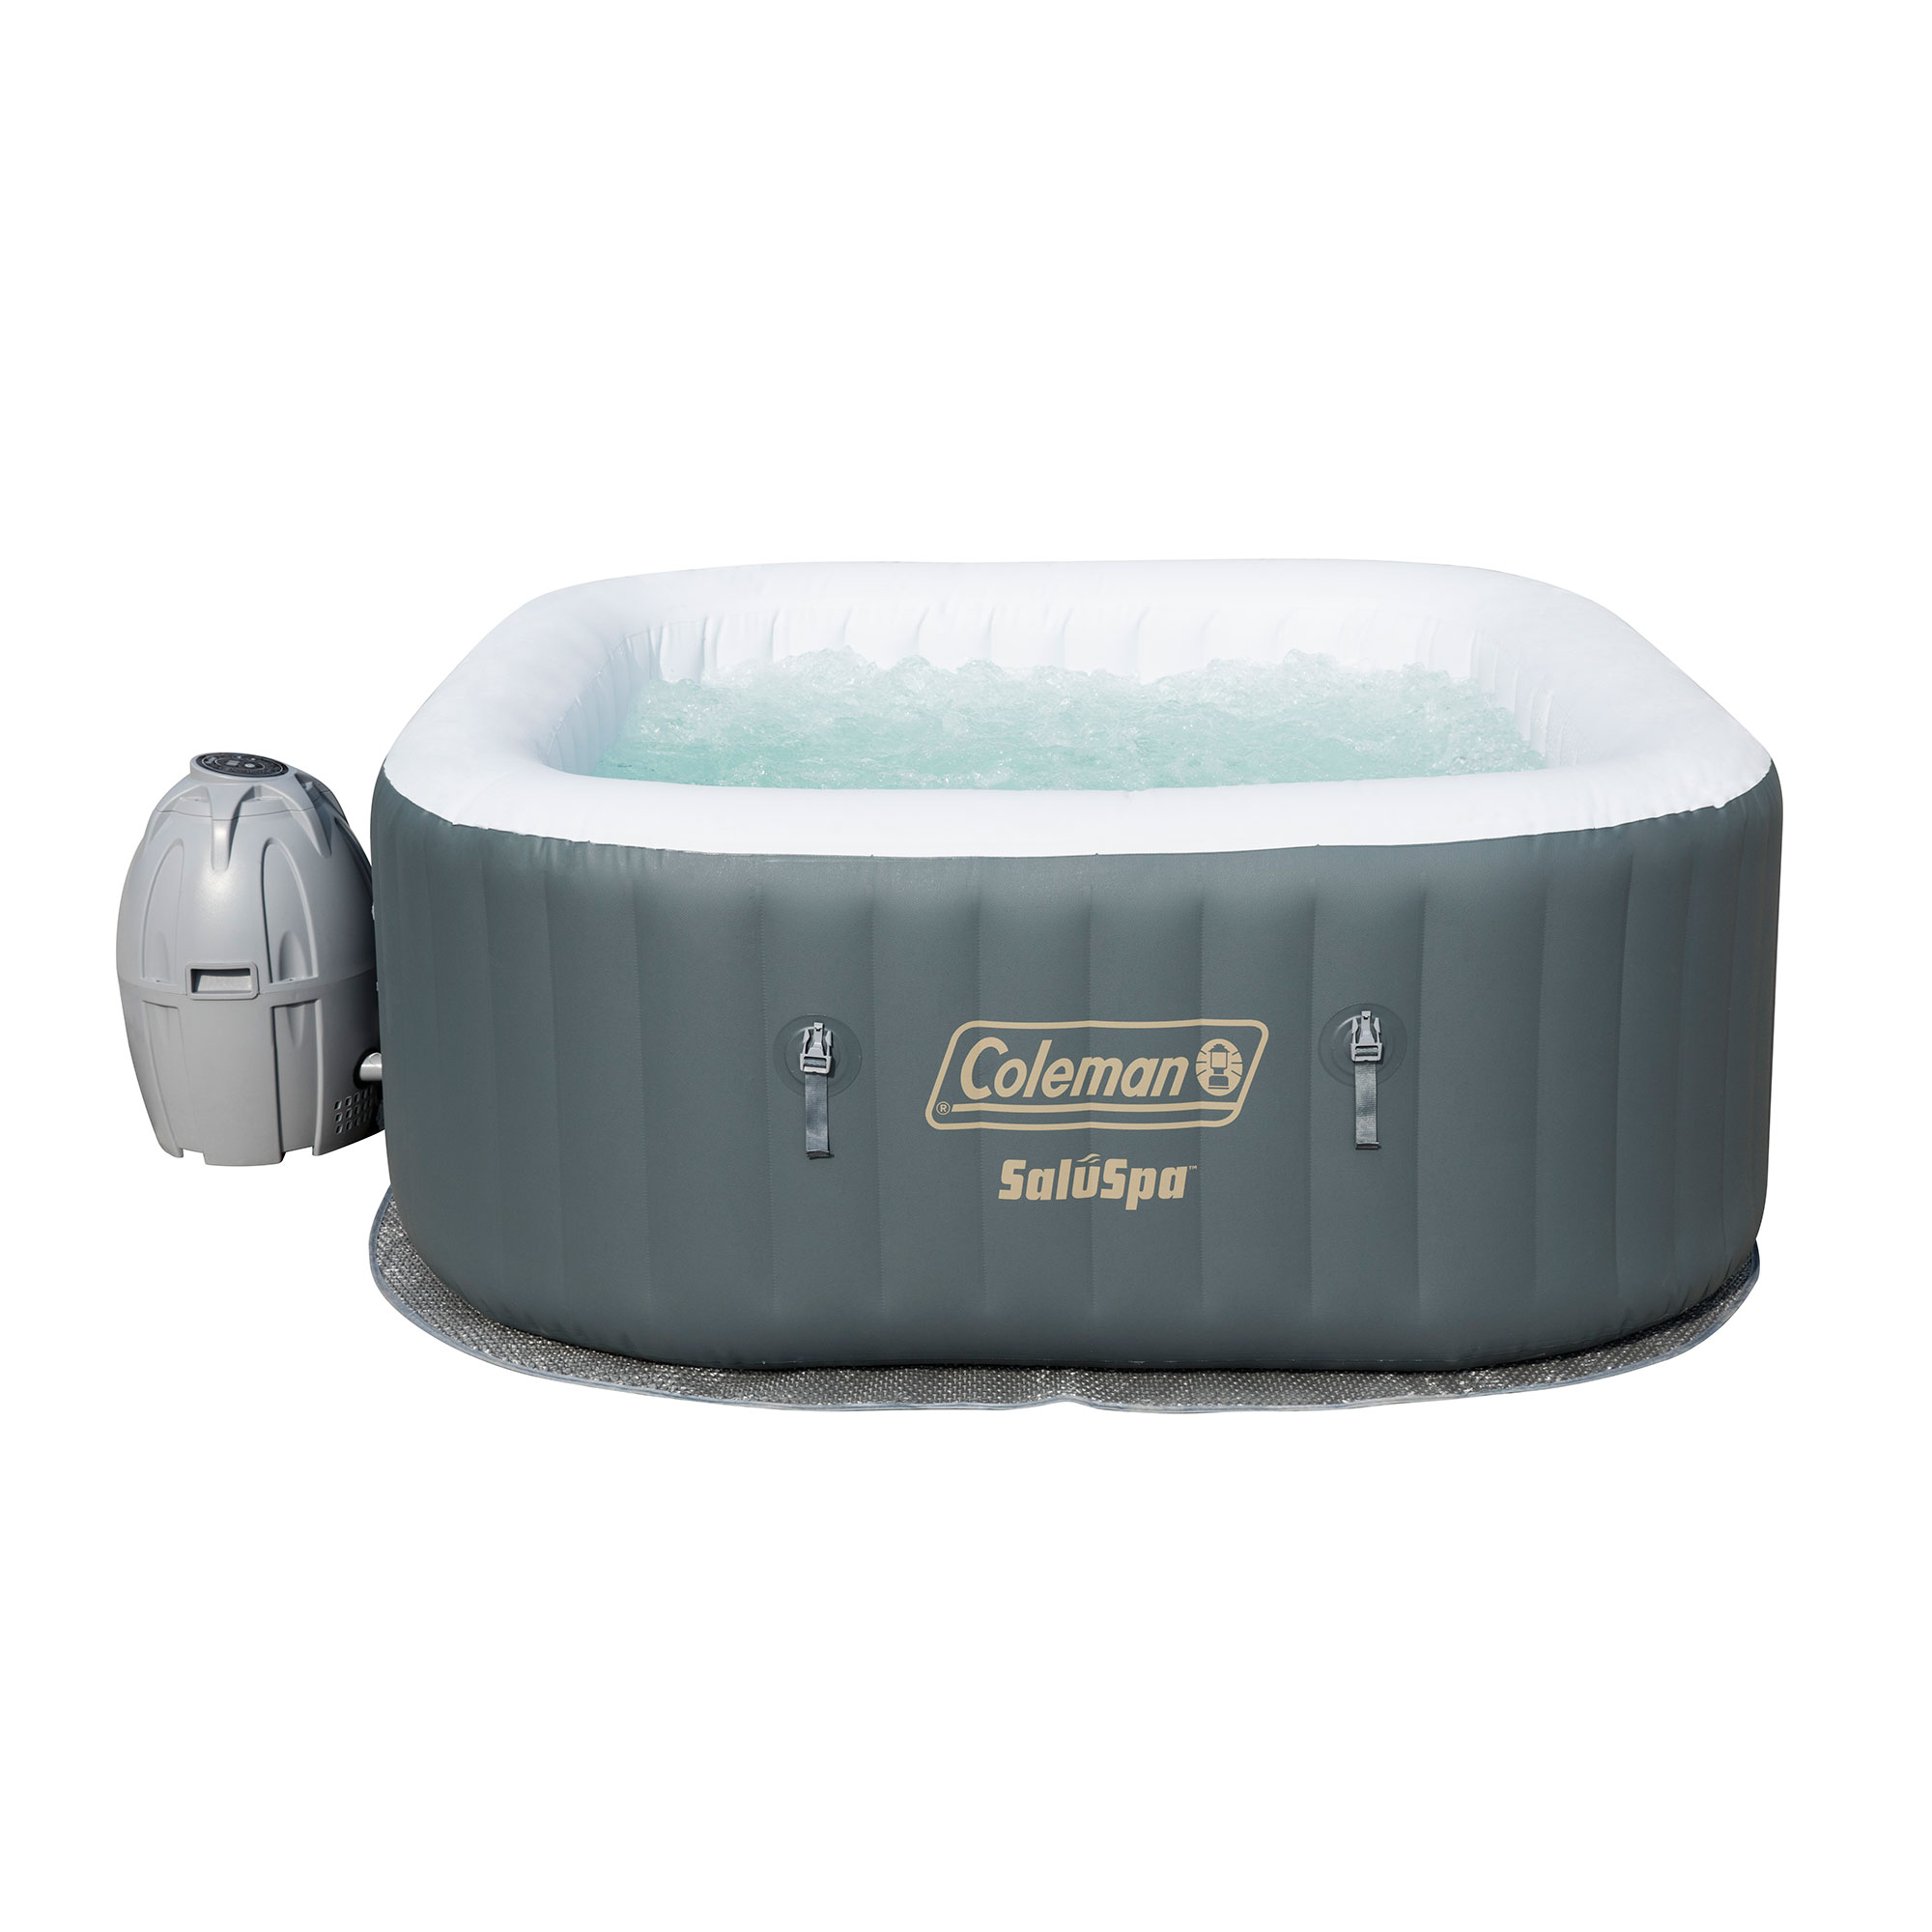 Coleman SaluSpa 4 Person Portable Inflatable Outdoor AirJet Spa Hot Tub, Gray by COLEMAN